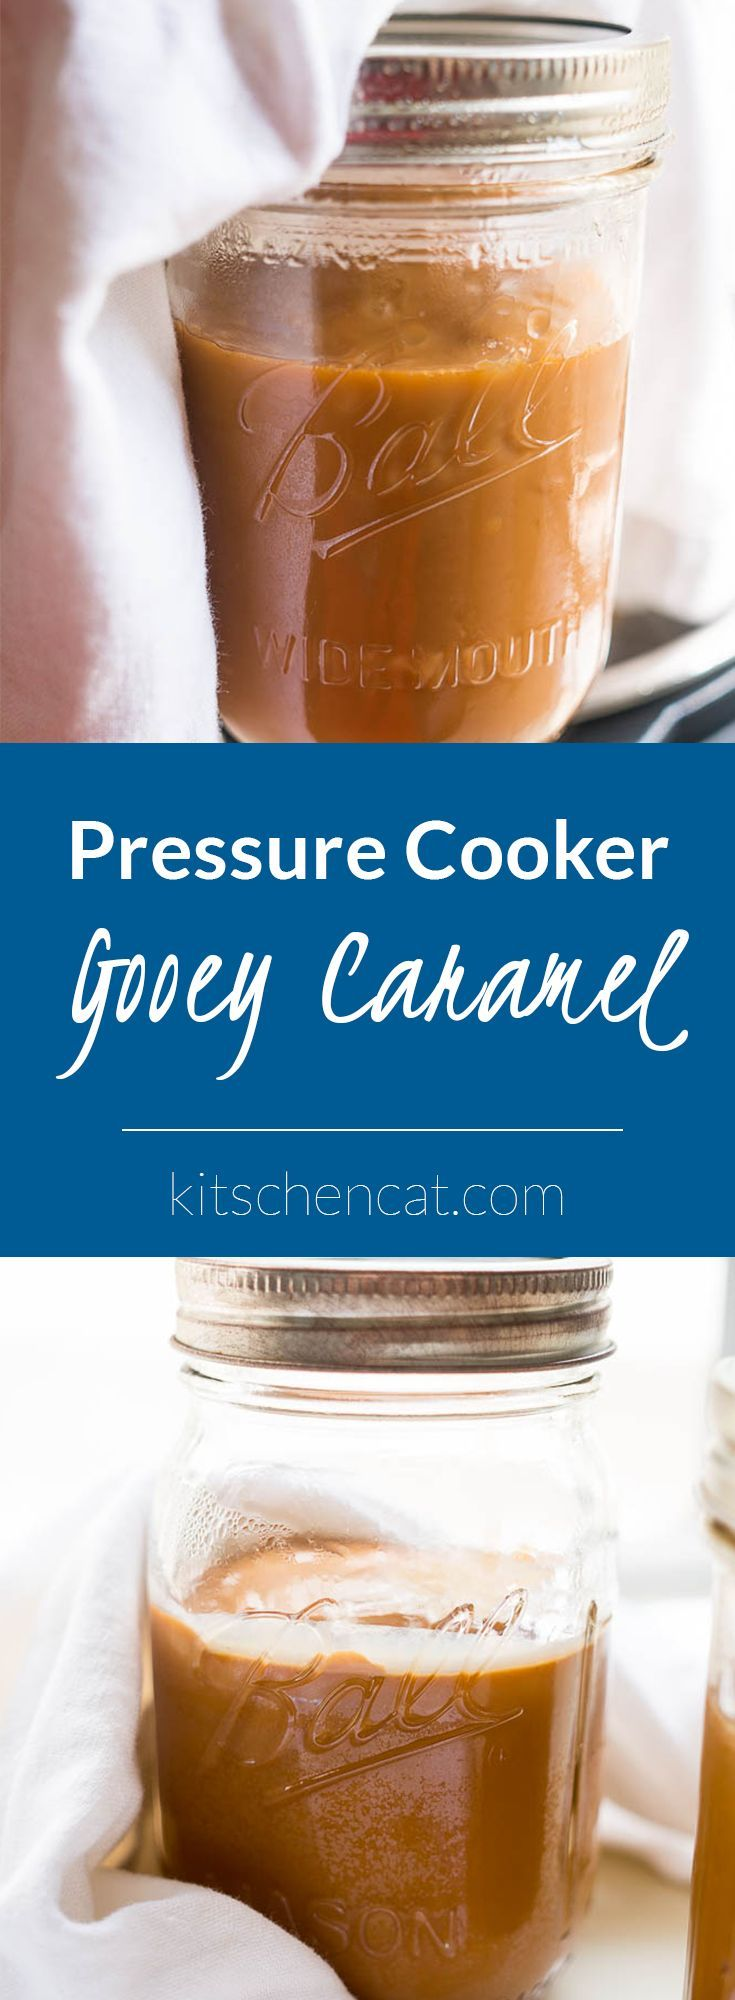 Pressure Cooker Gooey Caramel – step by step instructions for making your first batch of pressure cooker caramel!